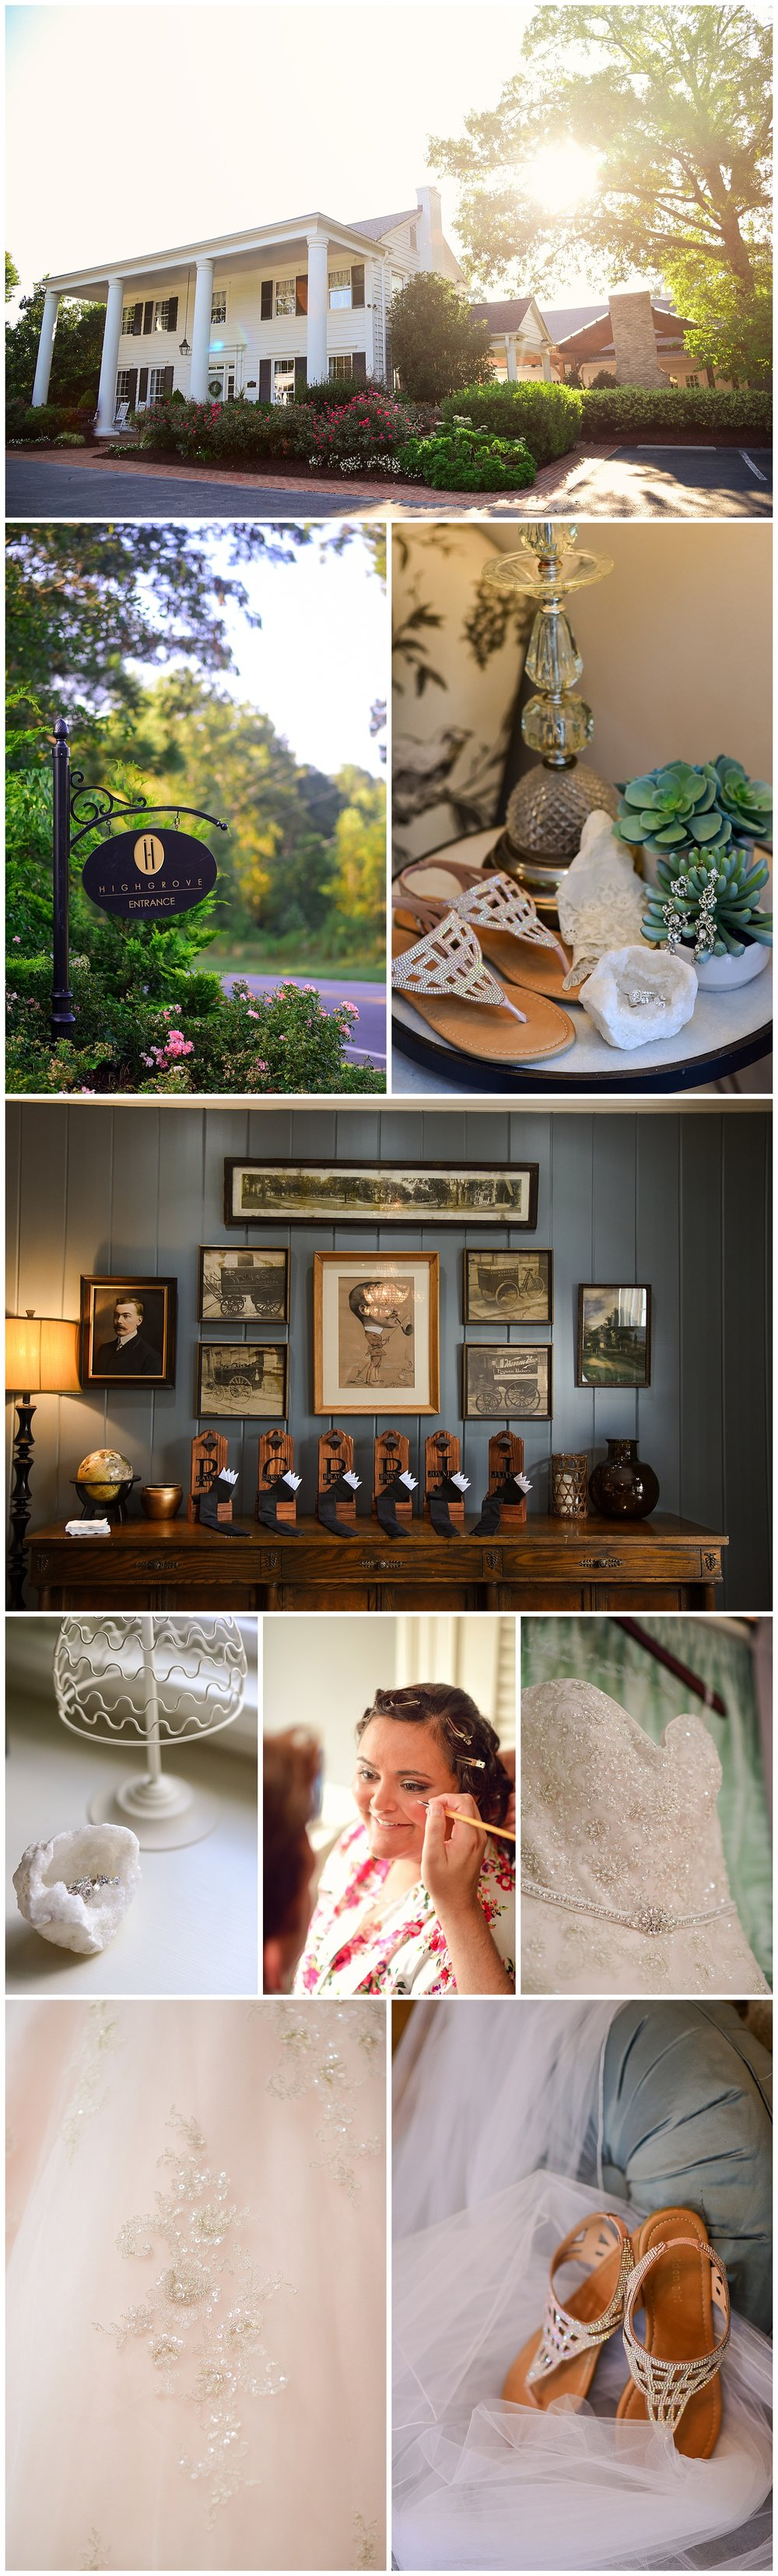 Highgrove Estate Wedding Details